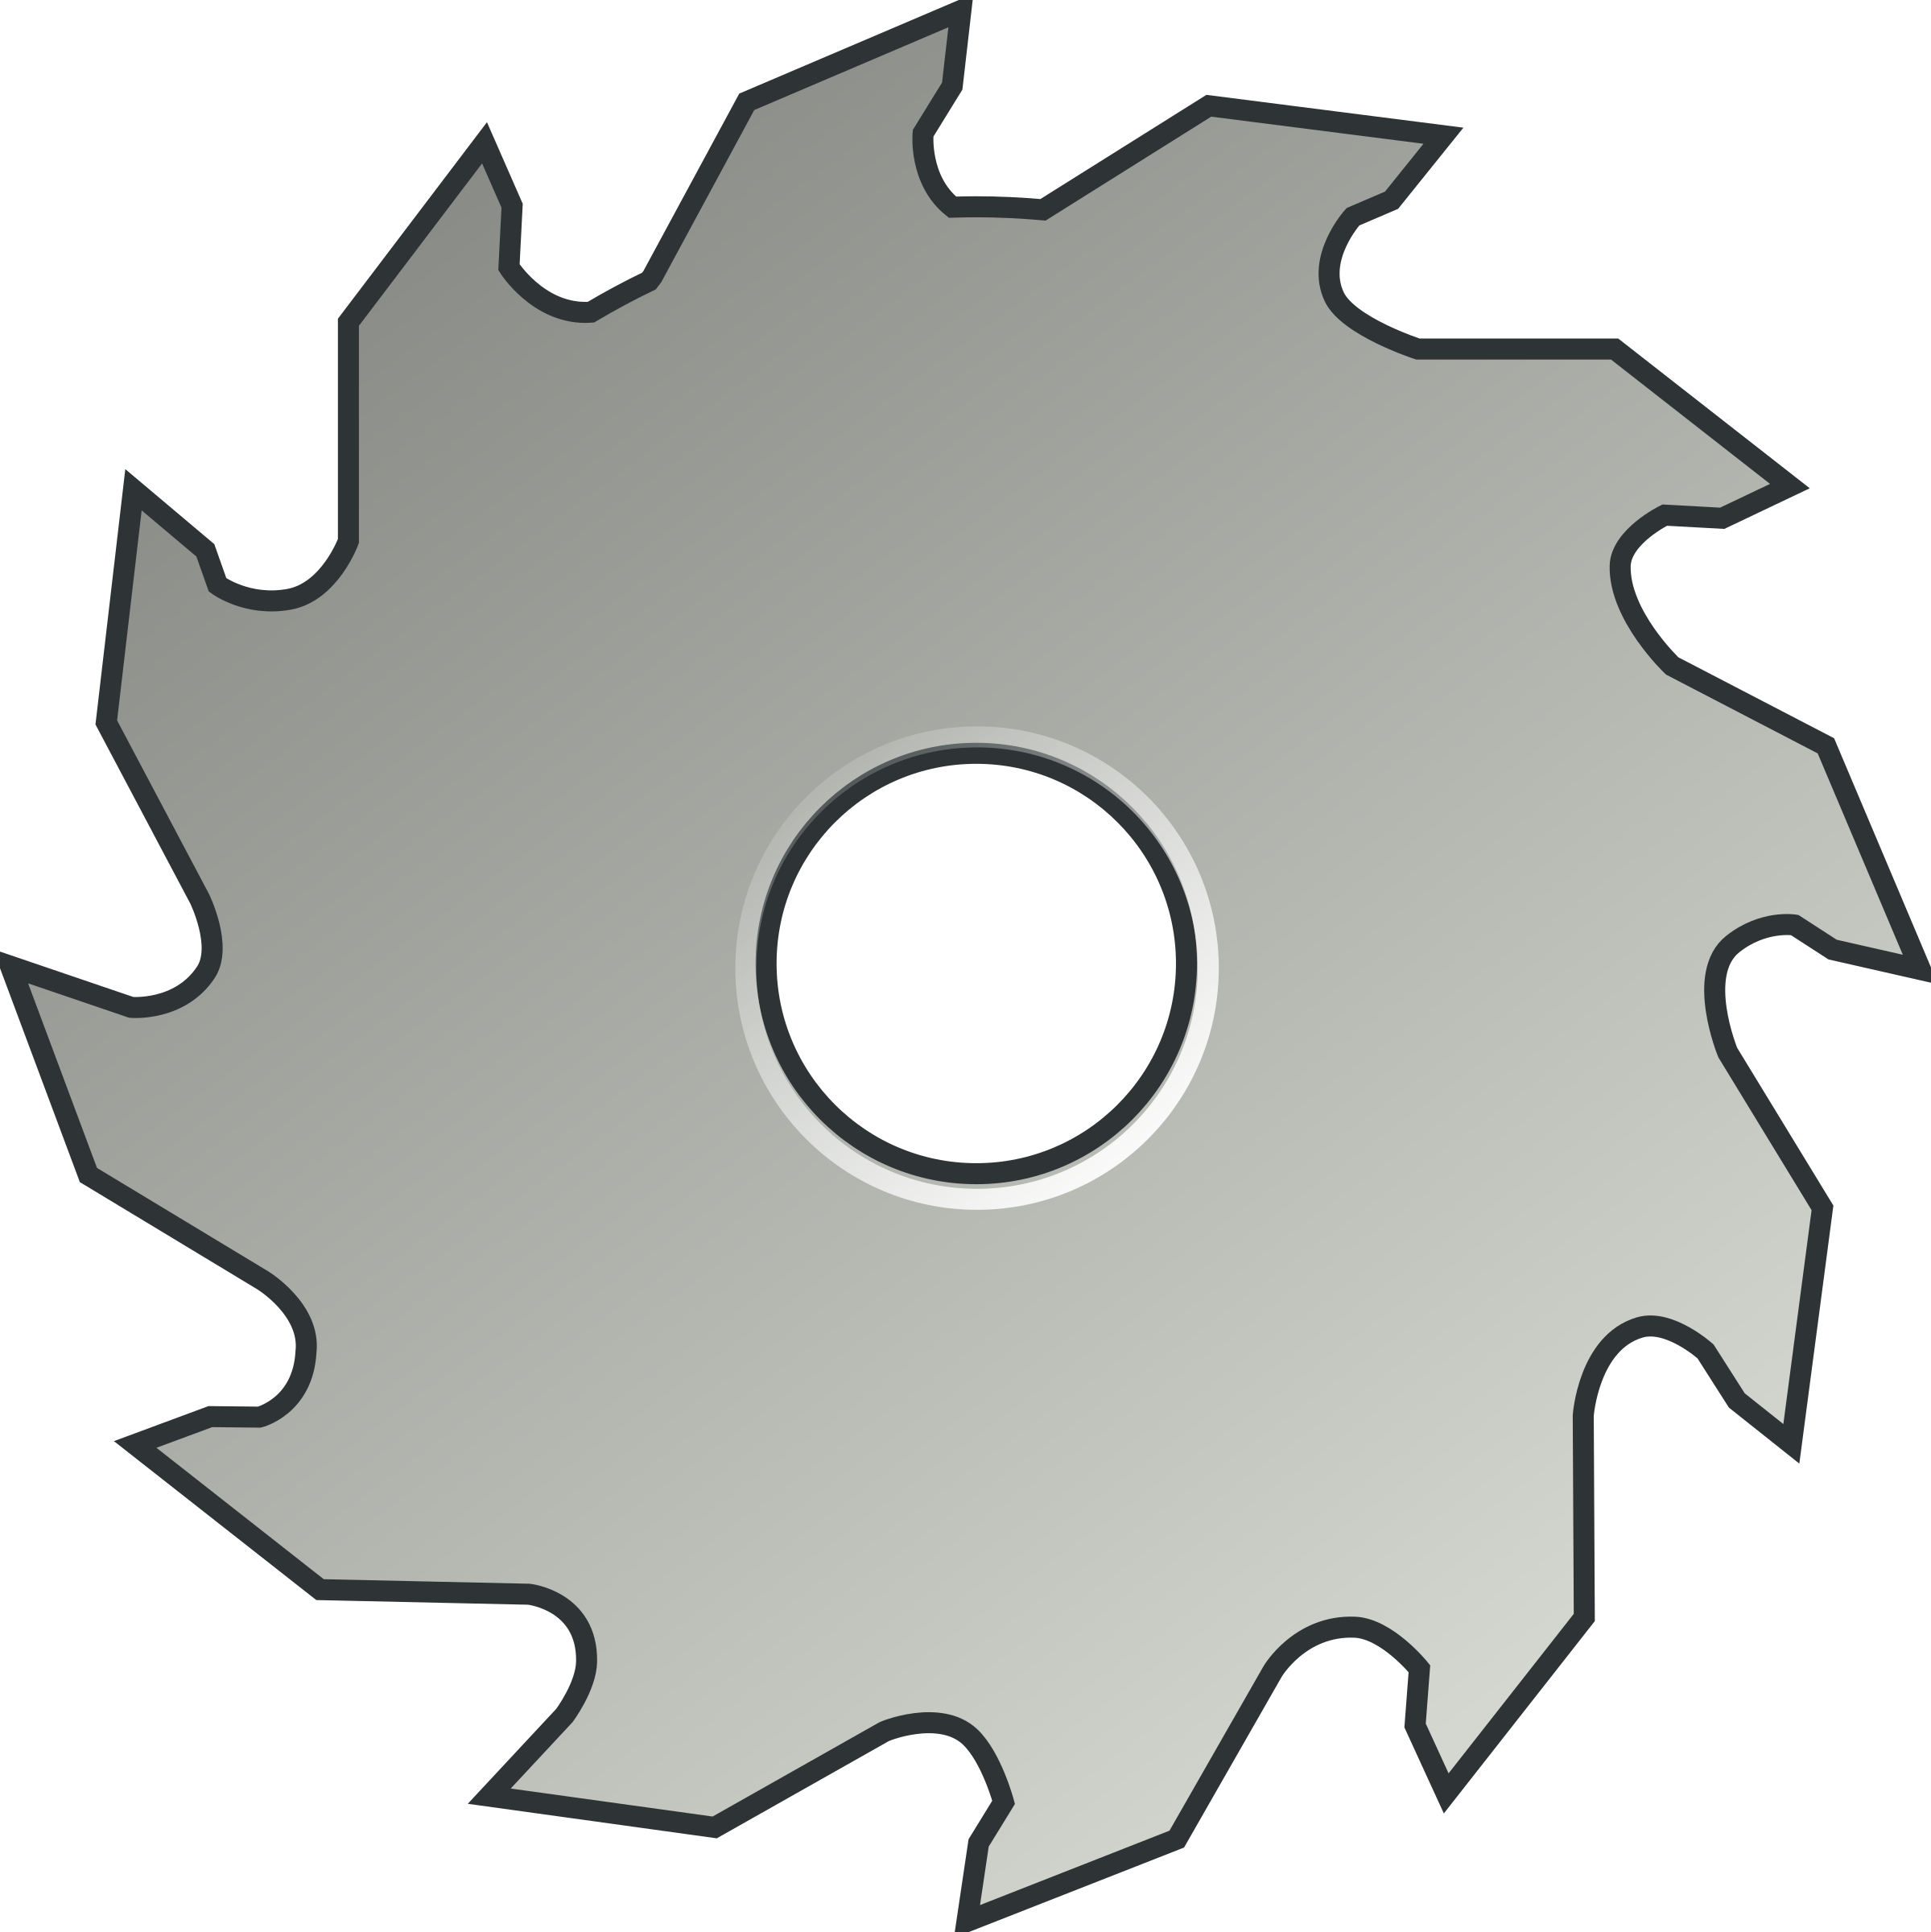 Free saw blade png image black and white. Icons downloads this design